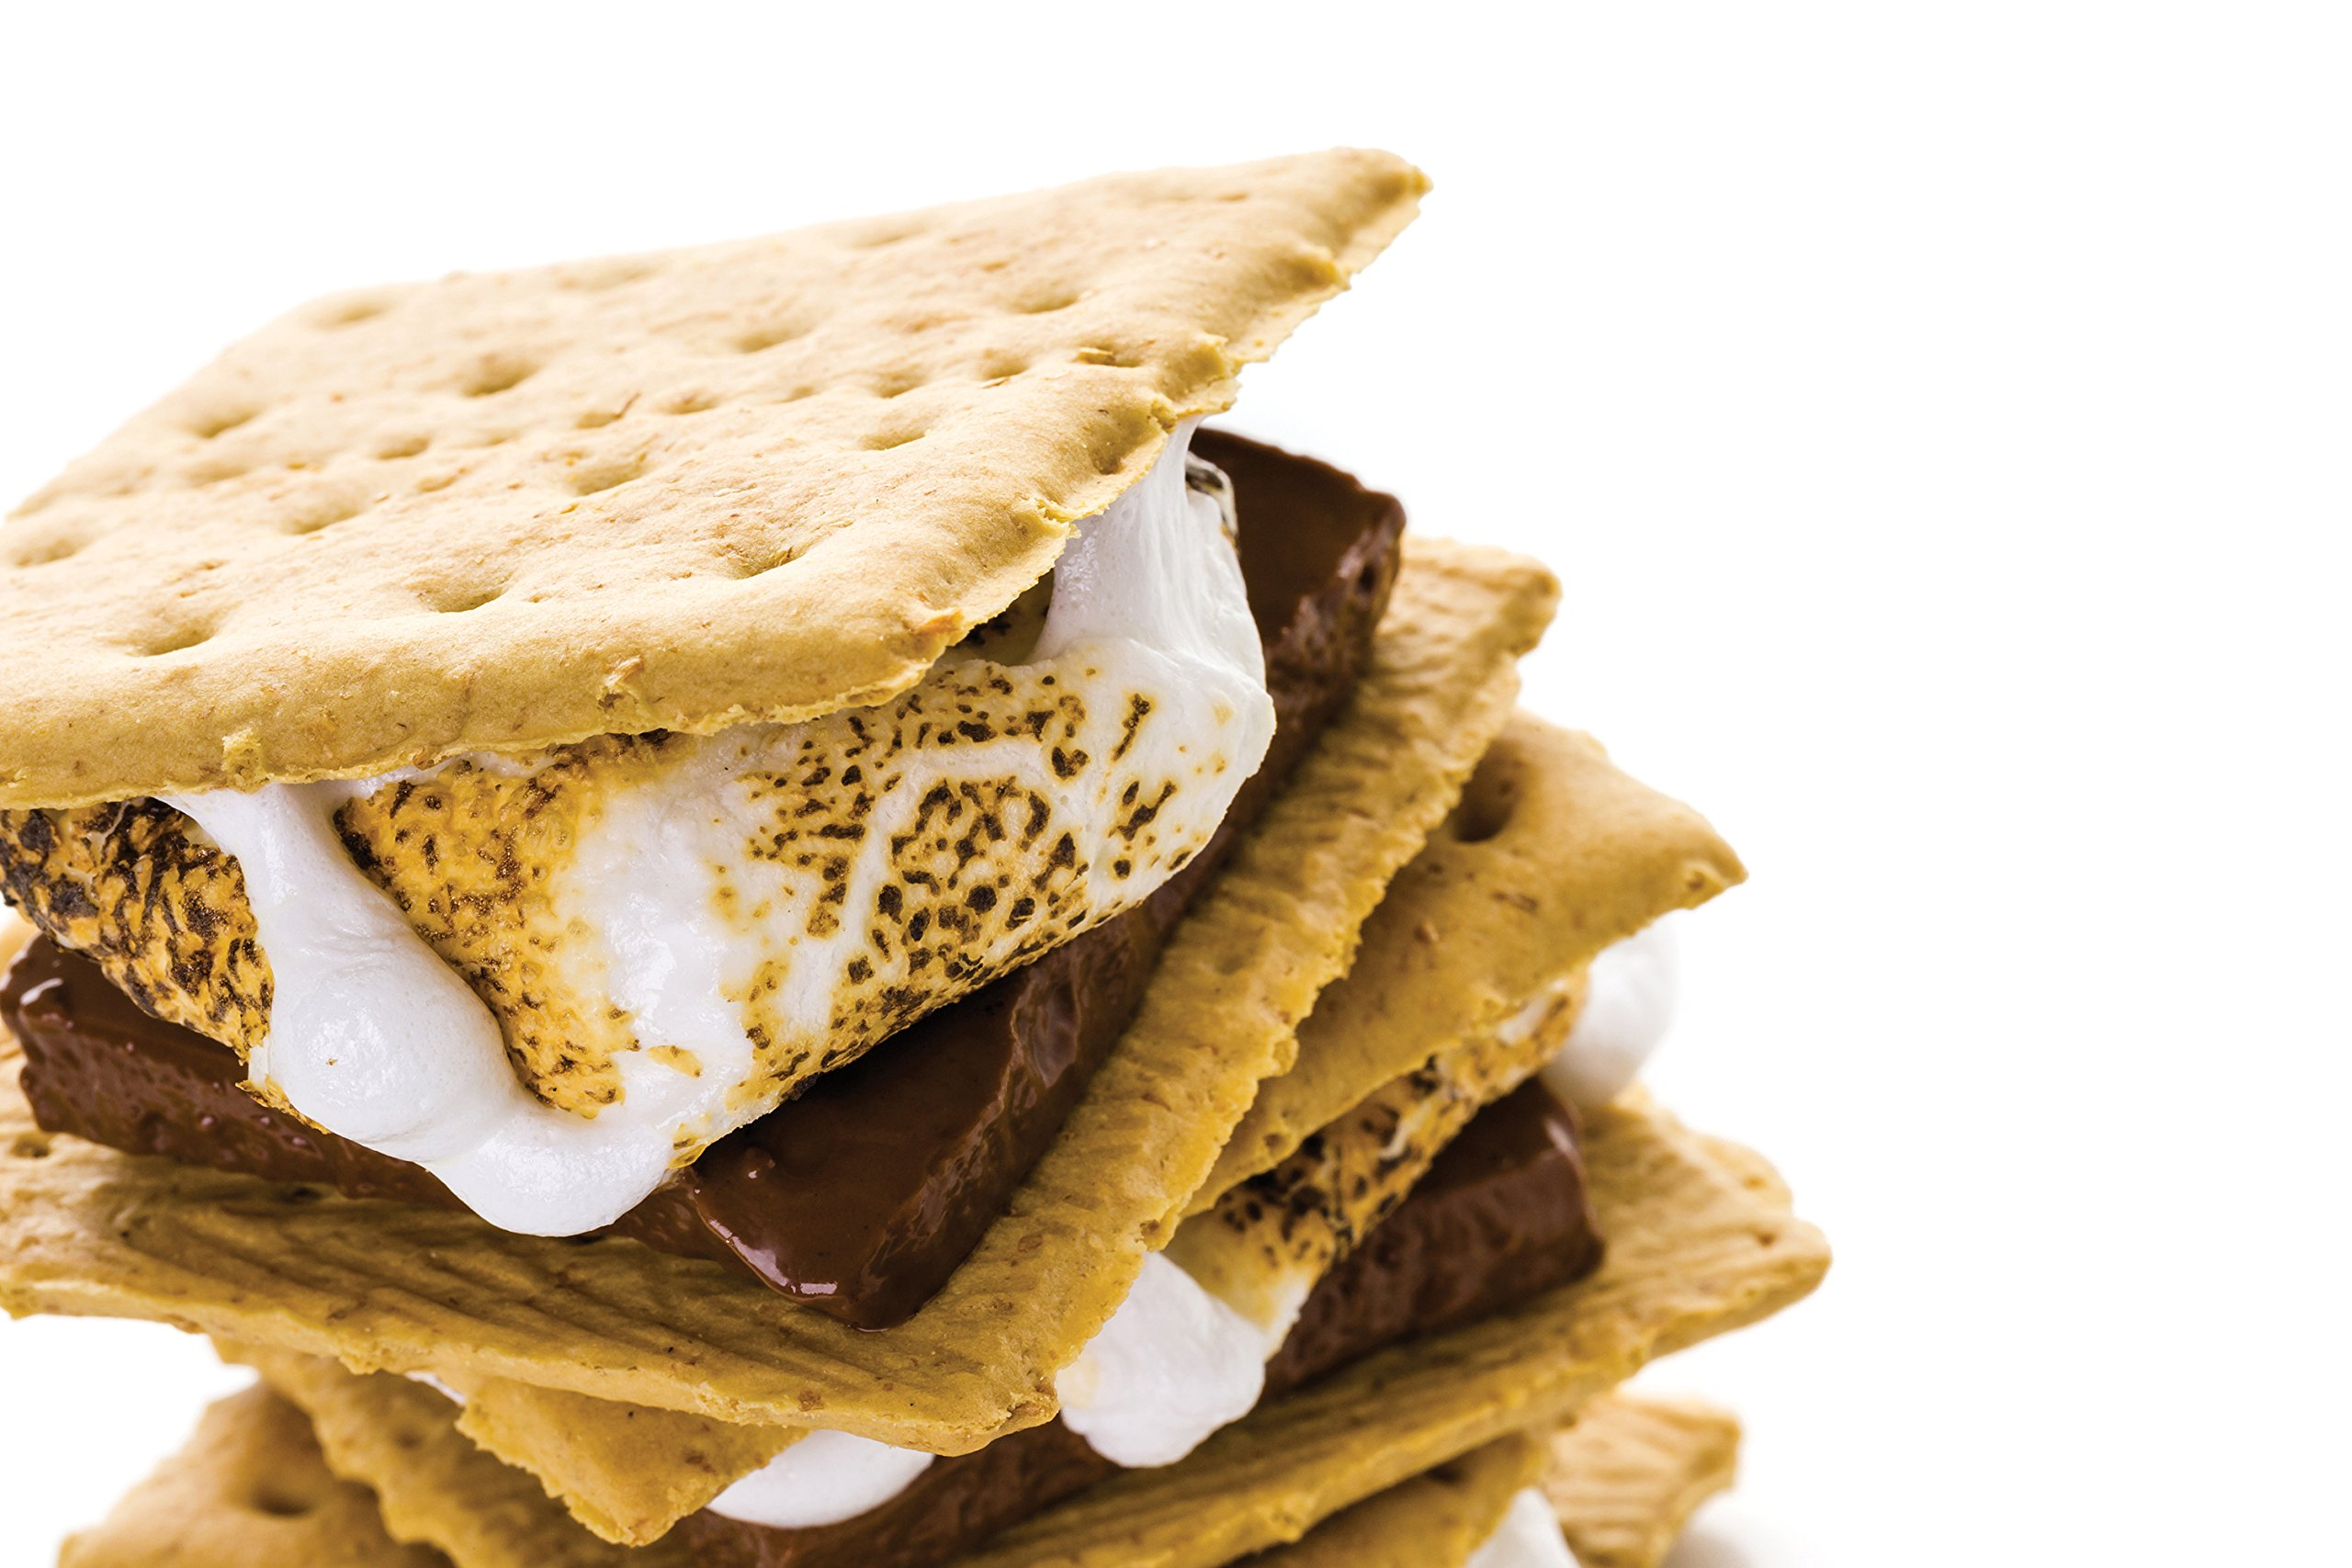 Nostalgia LSM400 Lazy Susan Electric Stainless Steel S'Mores Maker by Nostalgia (Image #6)